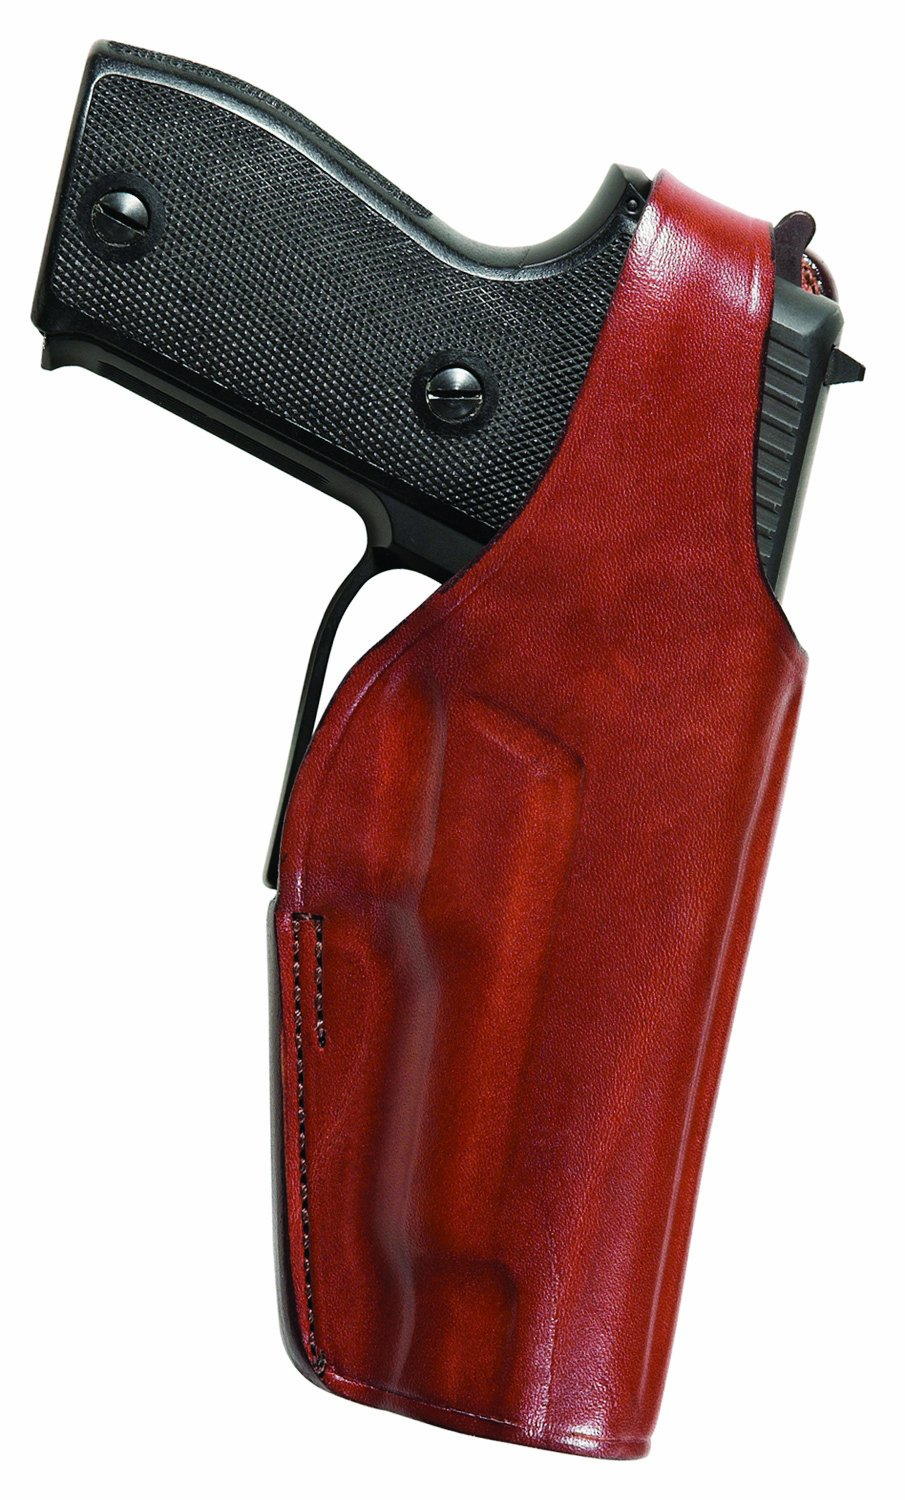 Bianchi 19l Thumbsnap Holster Browning Hi Power Tan Colt1911assemblyschematic Government 380 Accessories Numrich Gun Right Hand Holsters Sports Outdoors